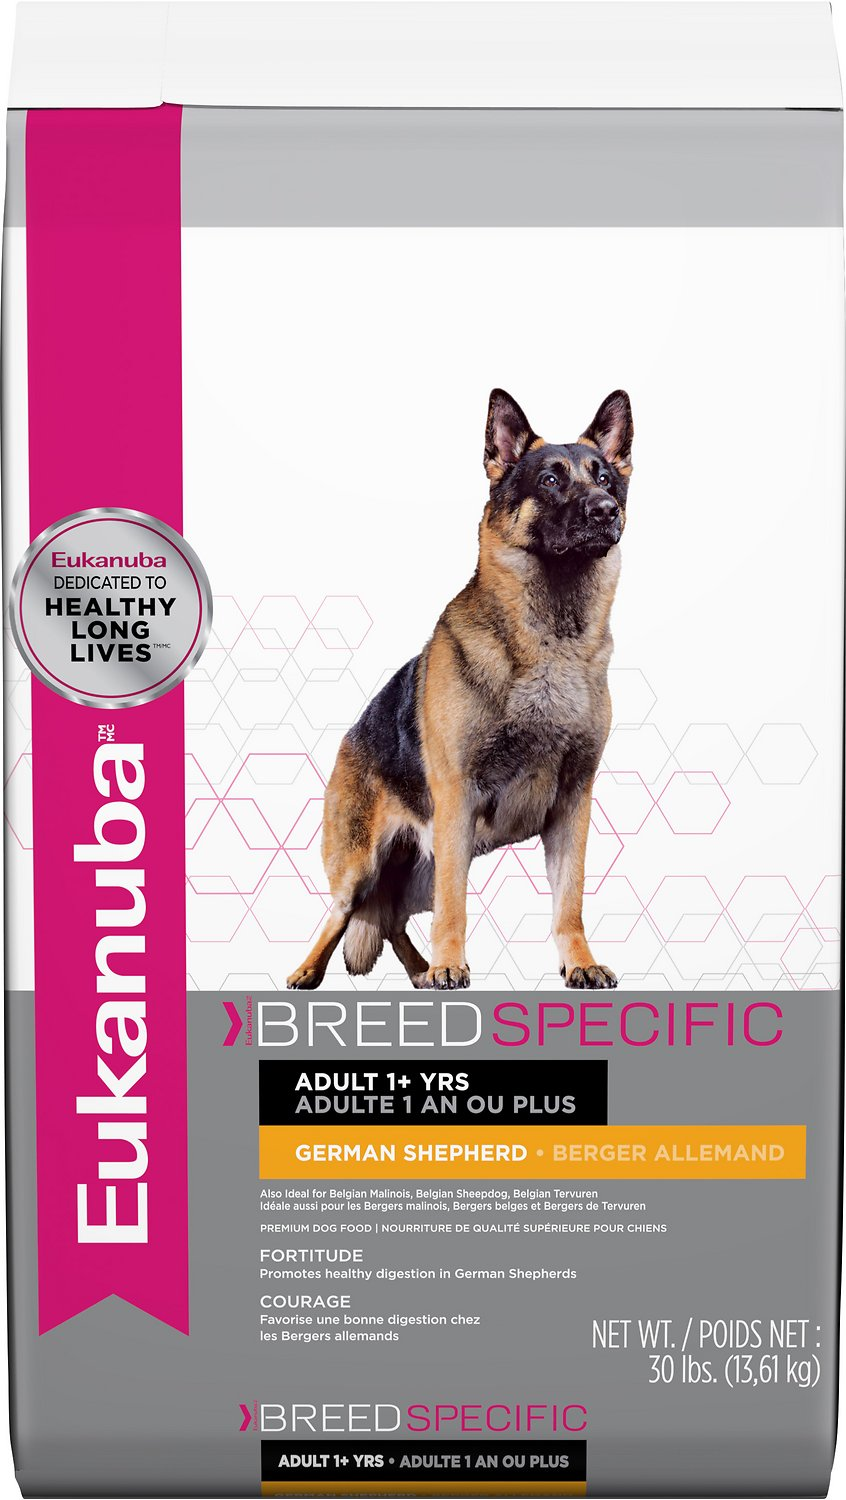 Allergy To Specific Breed Of Dog